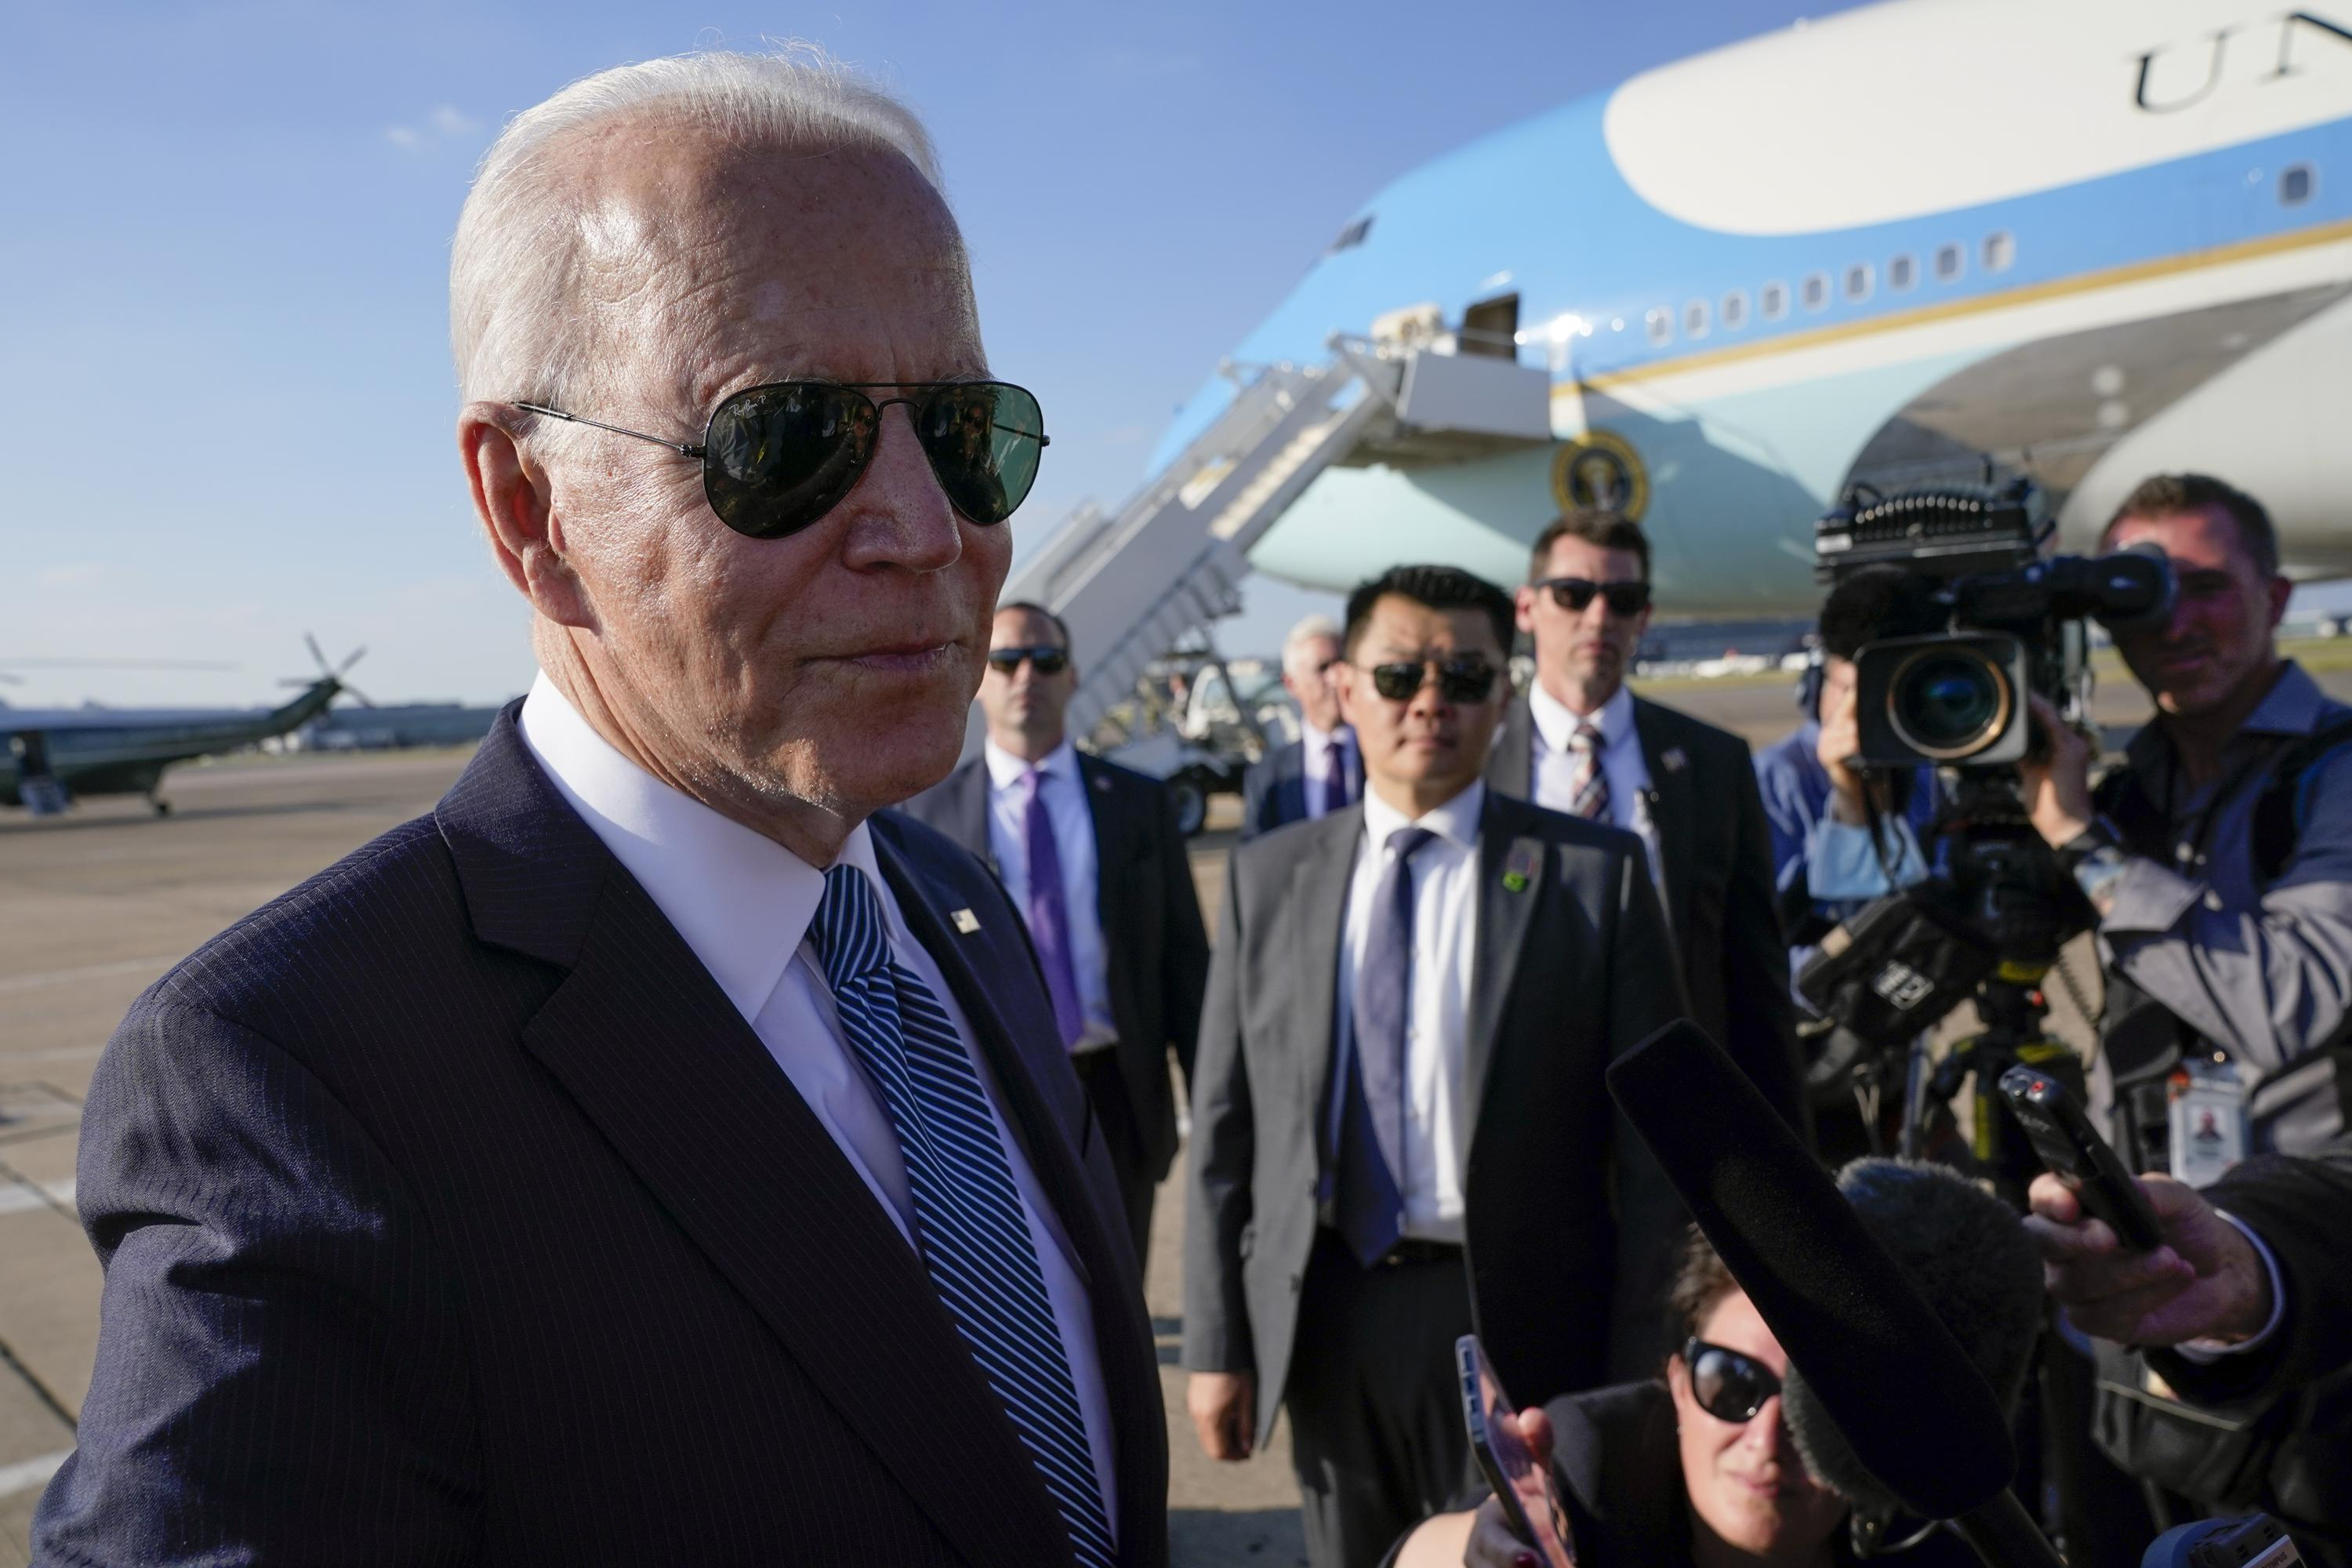 Biden at NATO: Ready to talk China, Russia and soothe allies